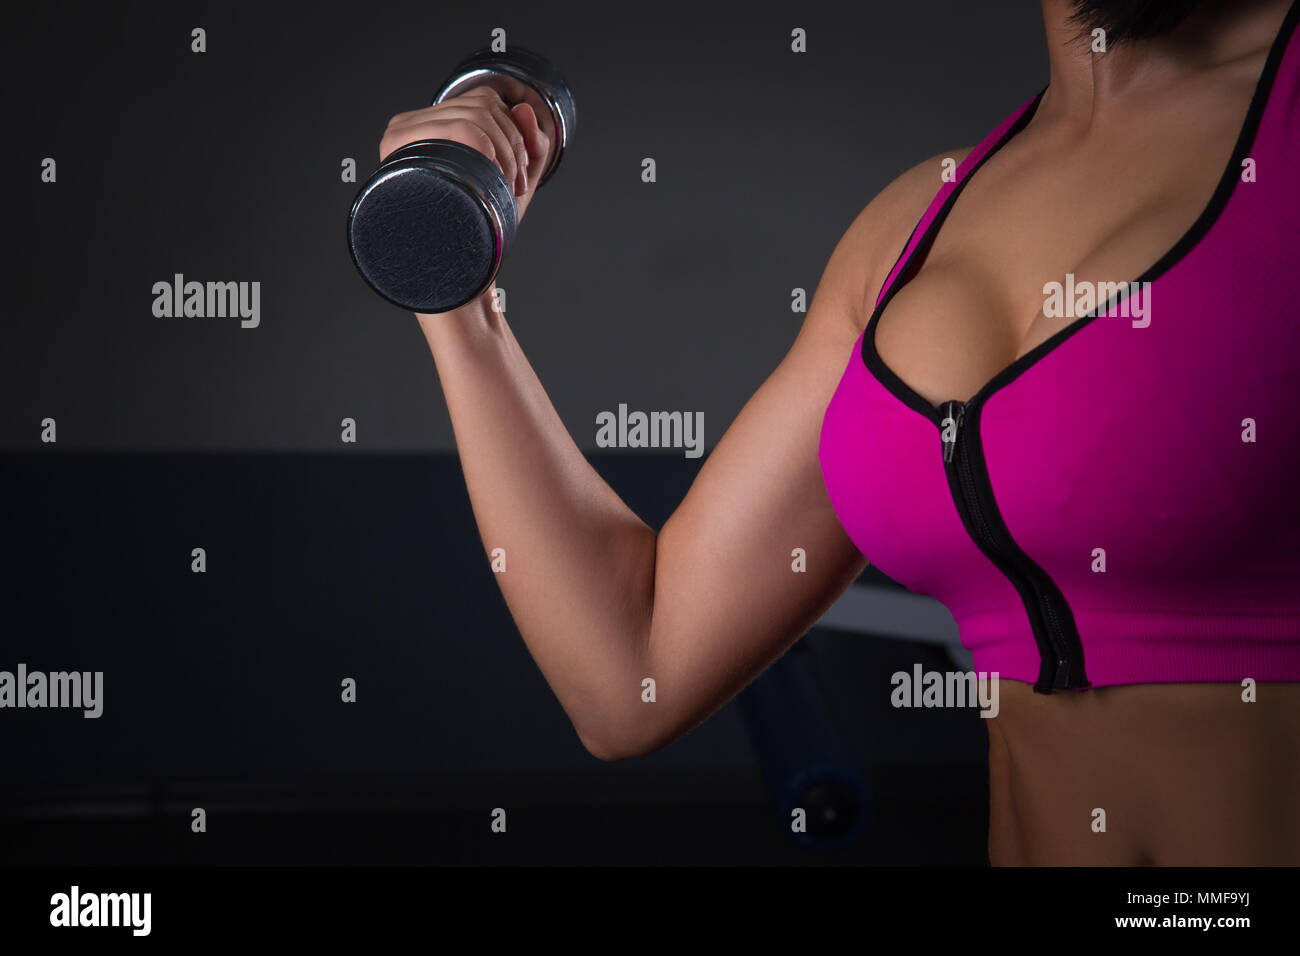 fitness model brunette holding weights on black background. athlete lifts a  dumbbell. halthy concept